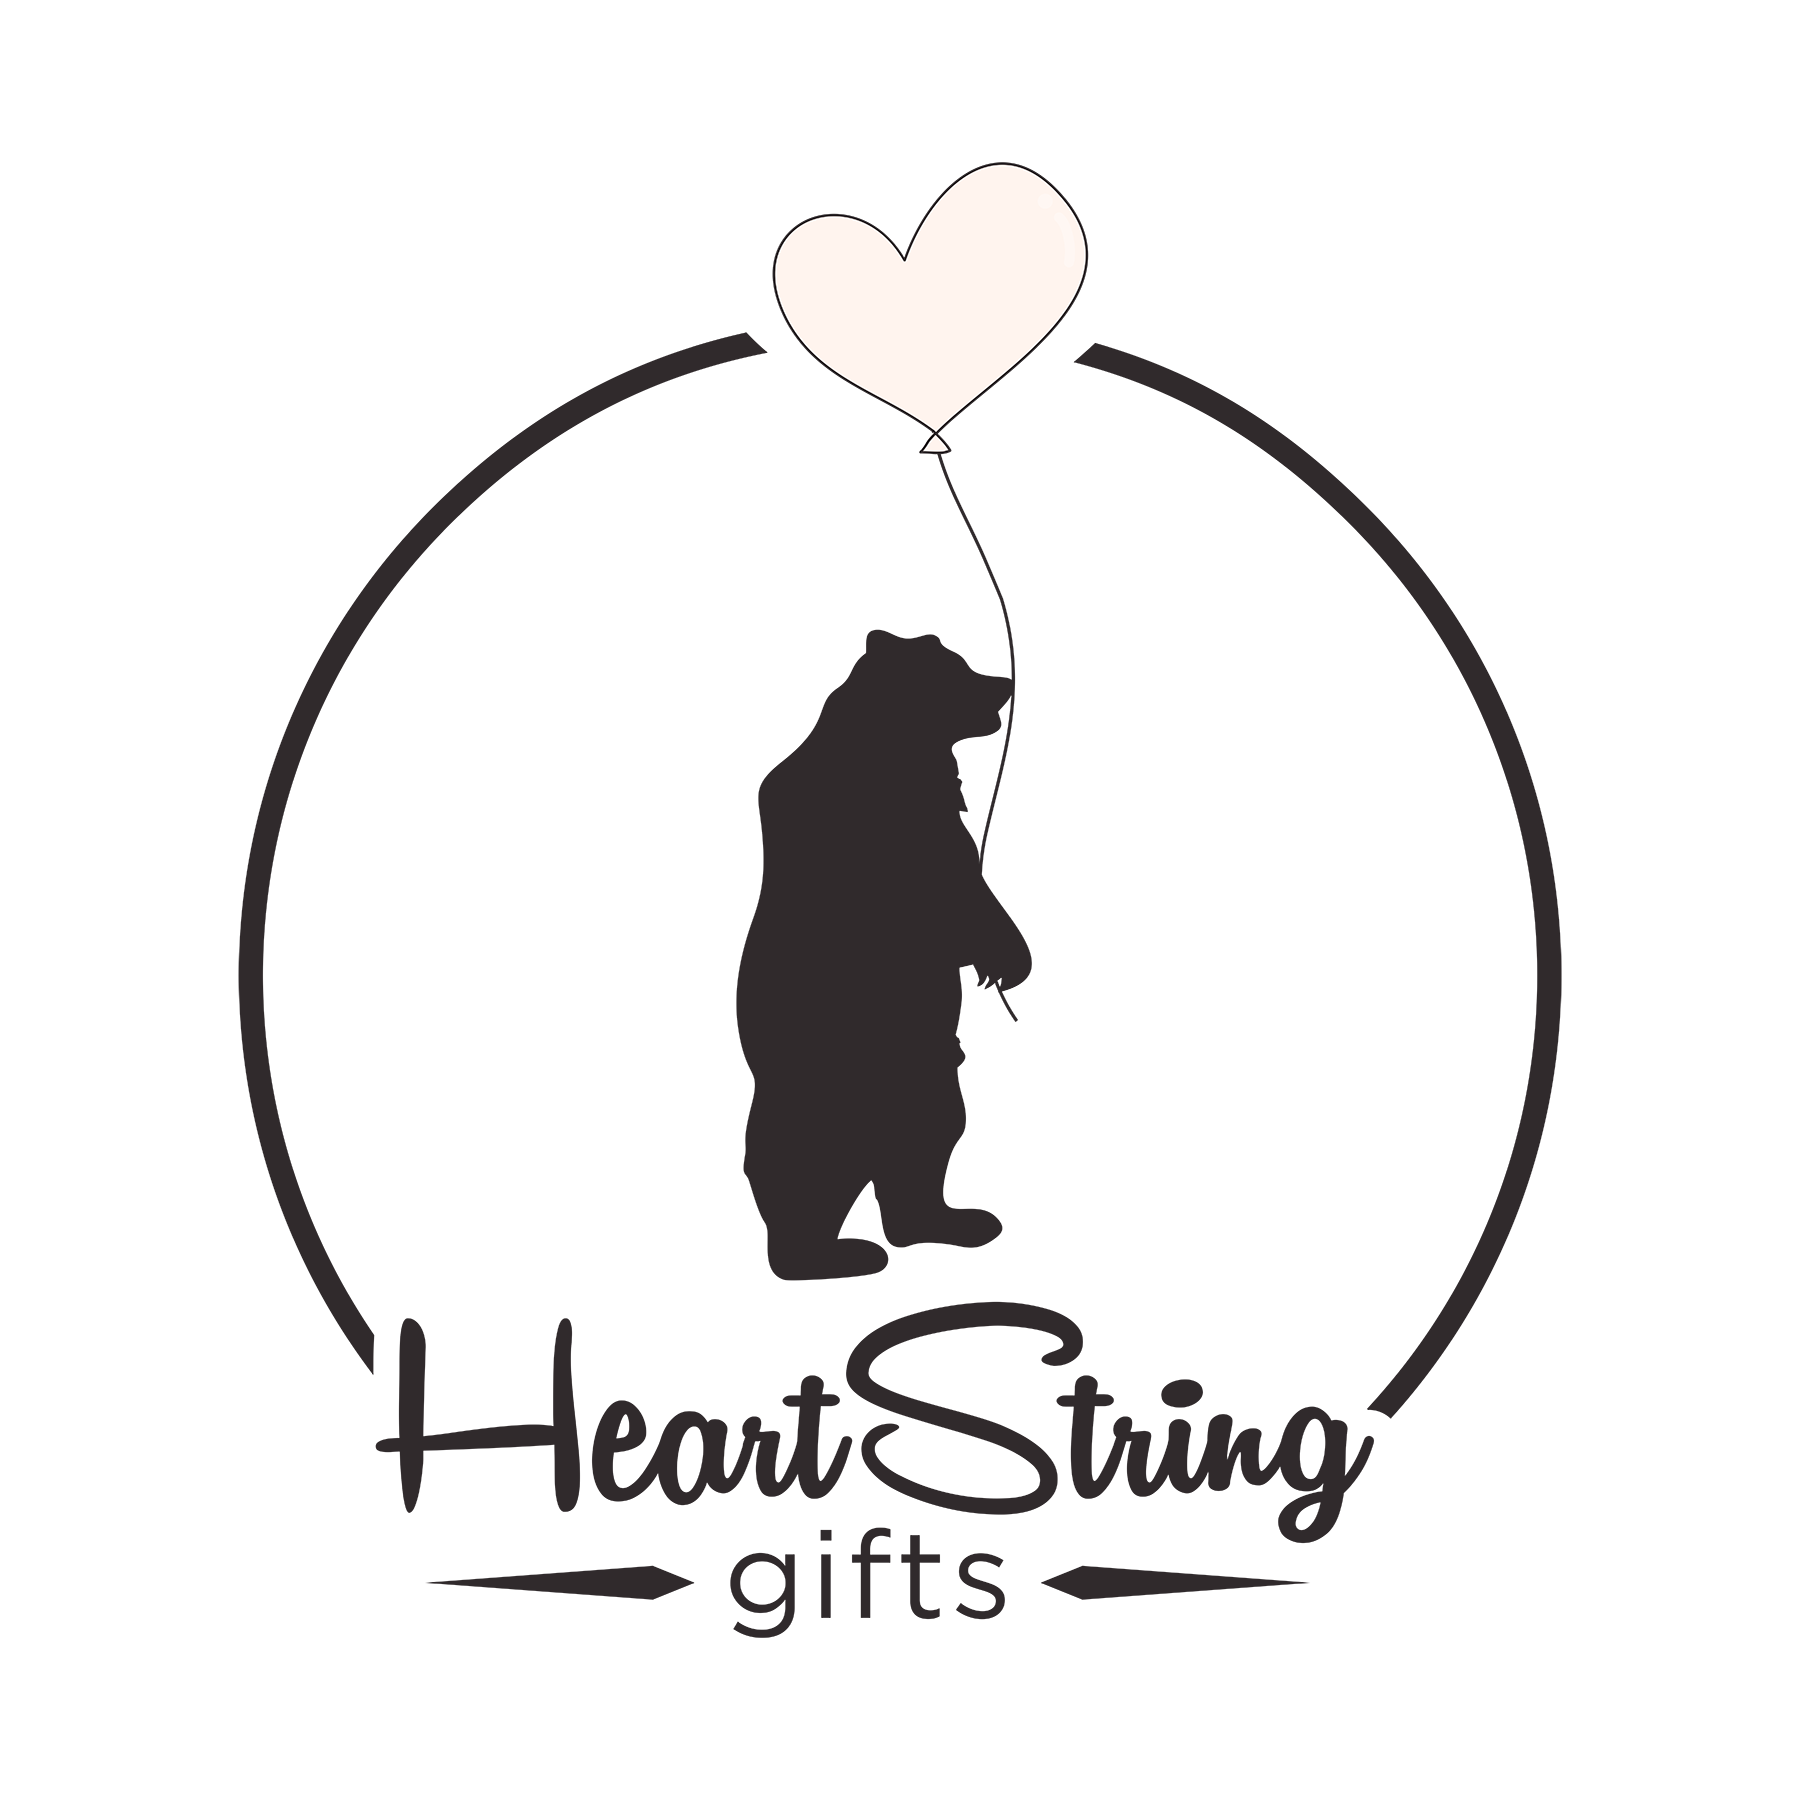 Heartstring Gifts create a tiny ripple of smiles by sending/receiving a gift and being part of something bigger by supporting Children's Cancer Research.